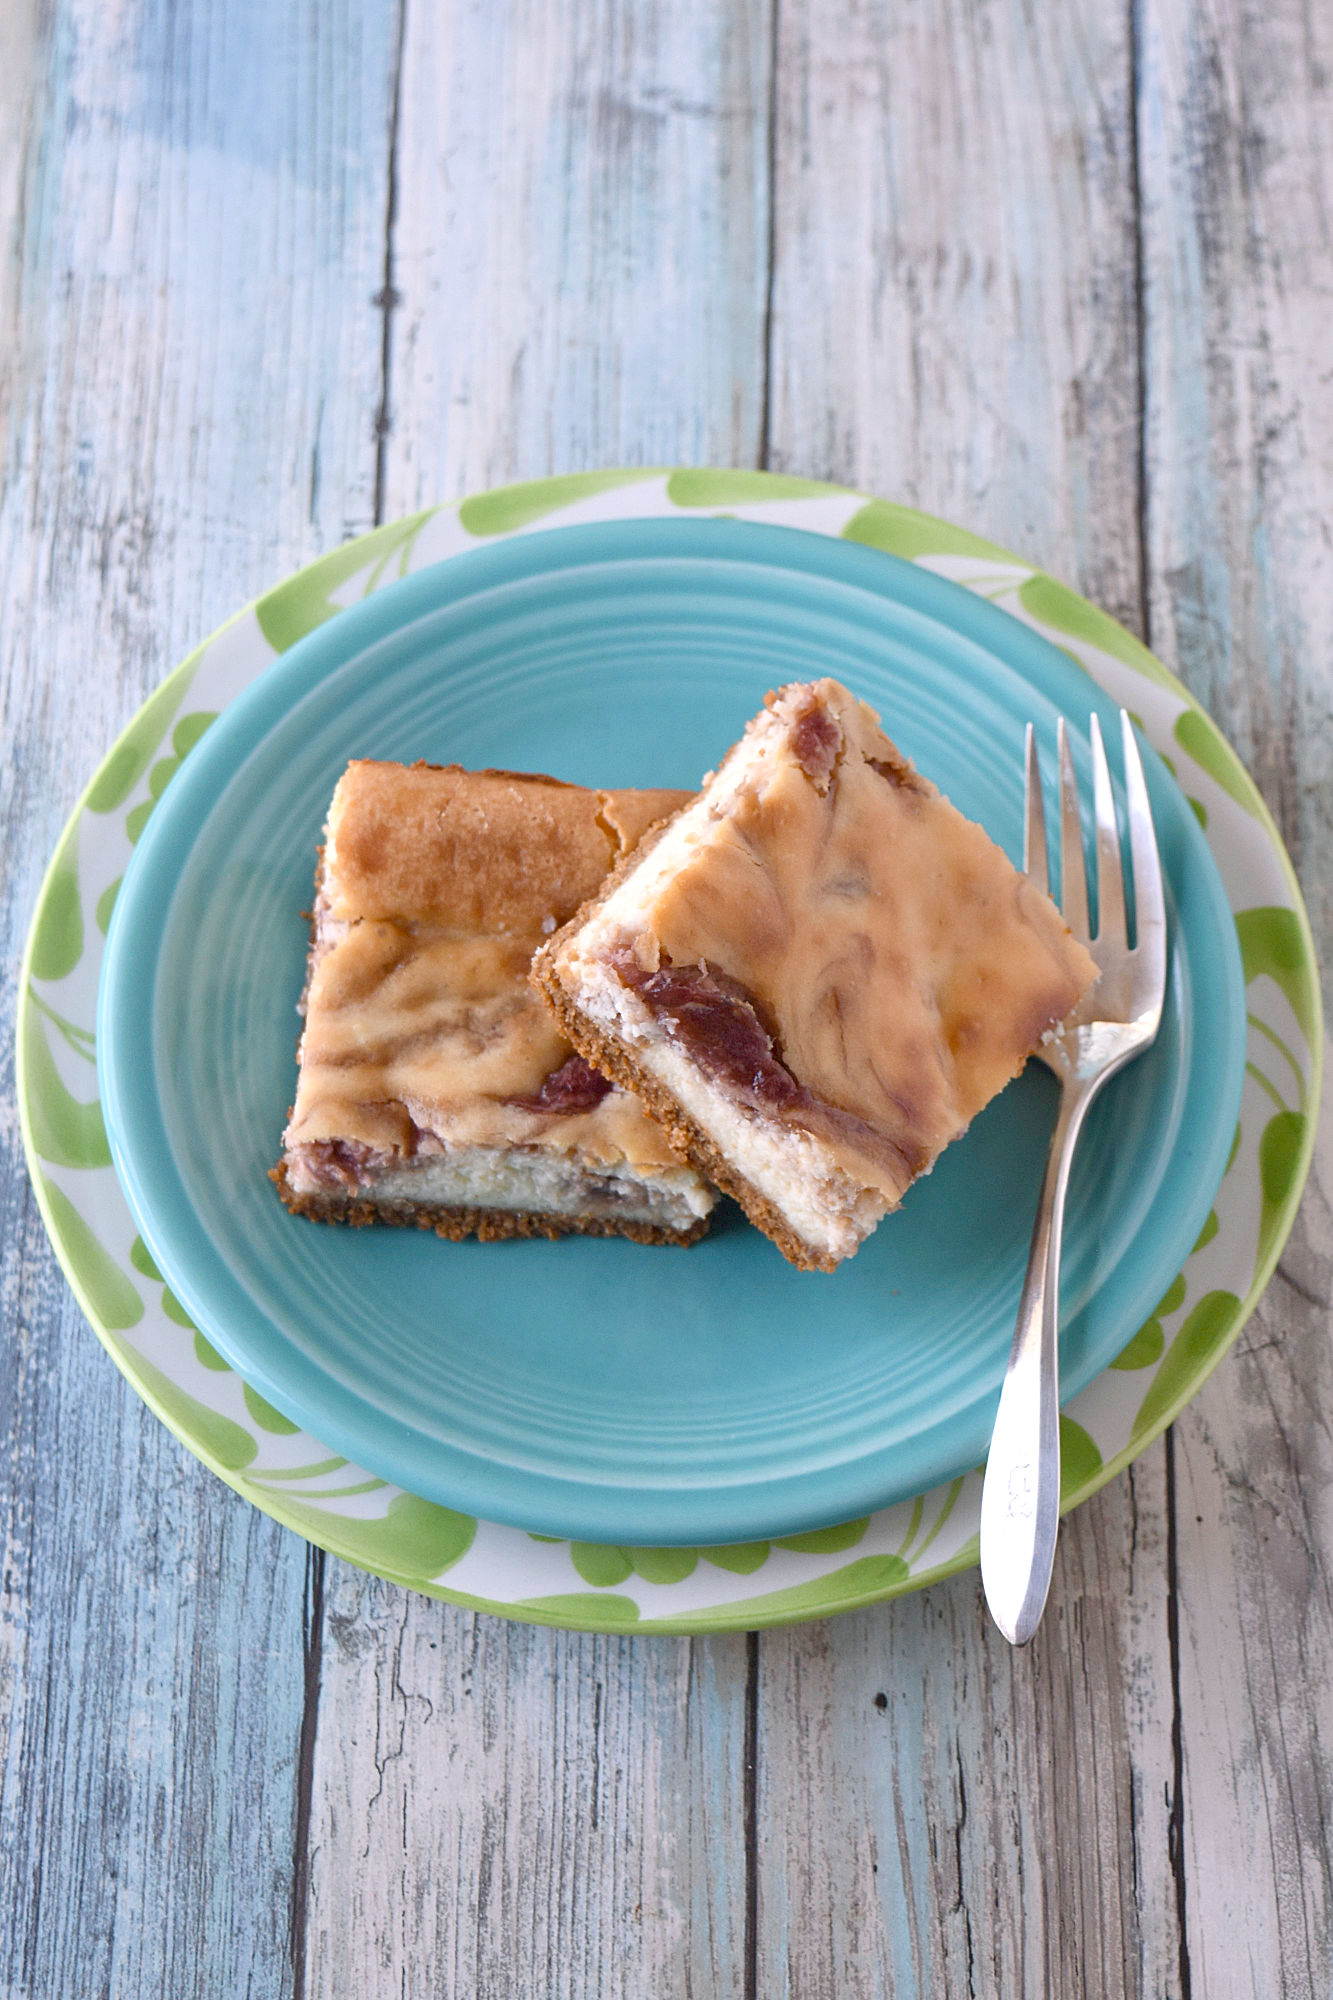 Rhubarb Cheesecake Bars are full of sweet tart flavor. They are creamy and perfectly delicious. #SpringSweetsWeek